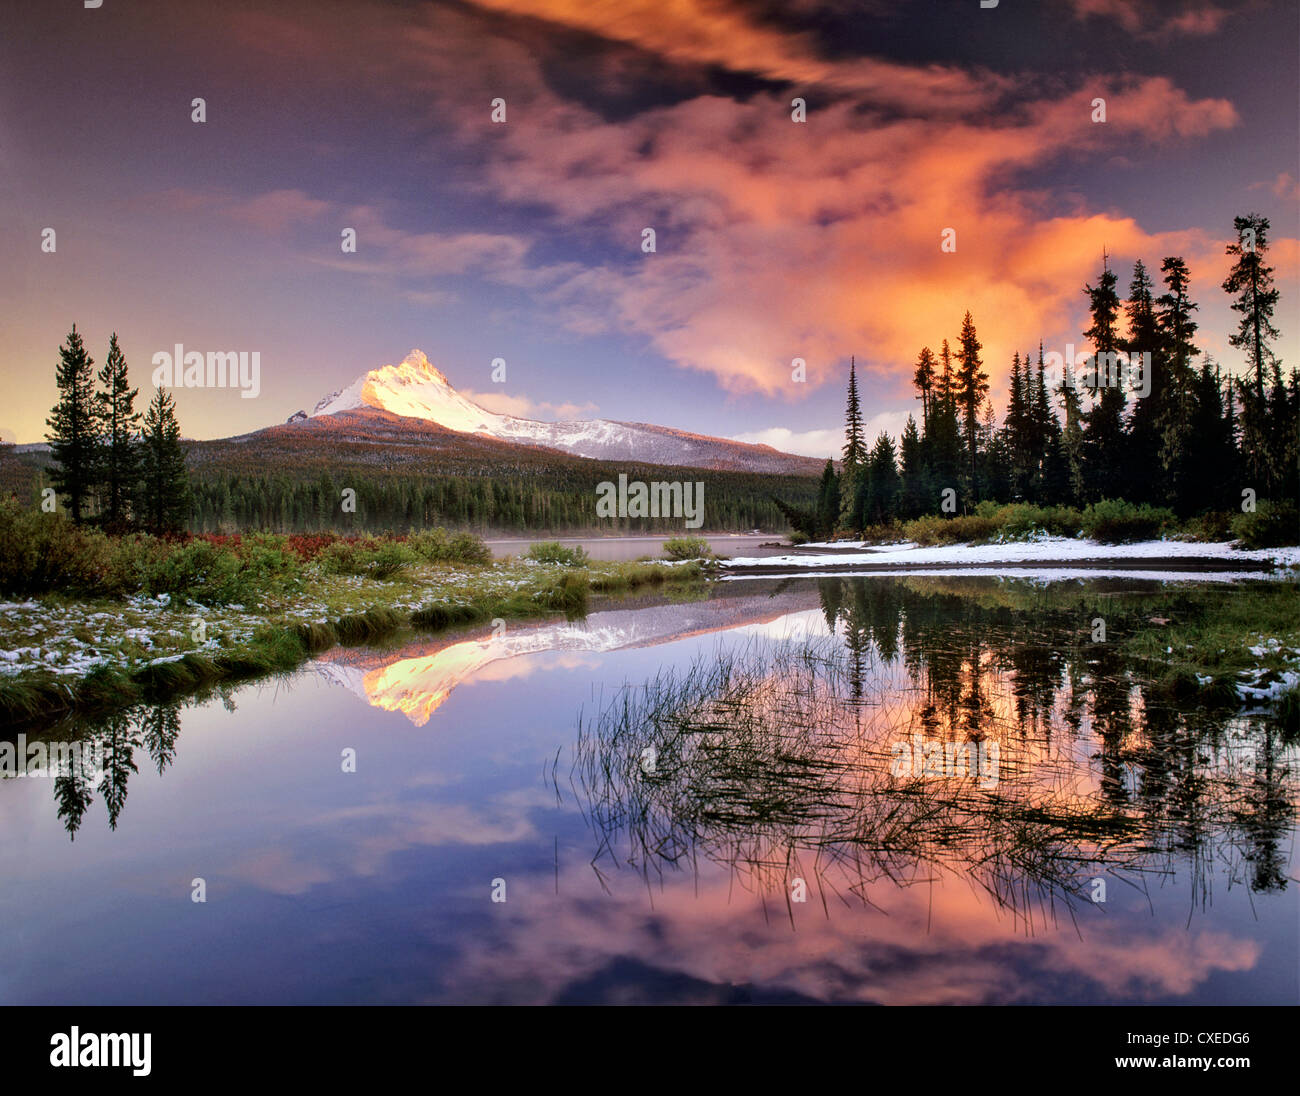 Mount Washington Reflexion in Big Lake. Oregon. Stockbild